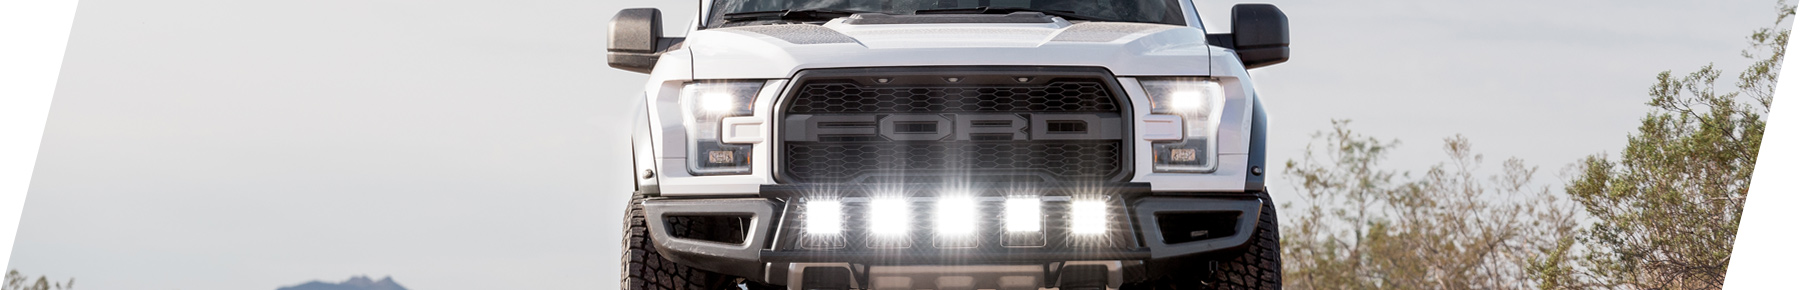 2017 Ford Raptor Lighting Upgrades